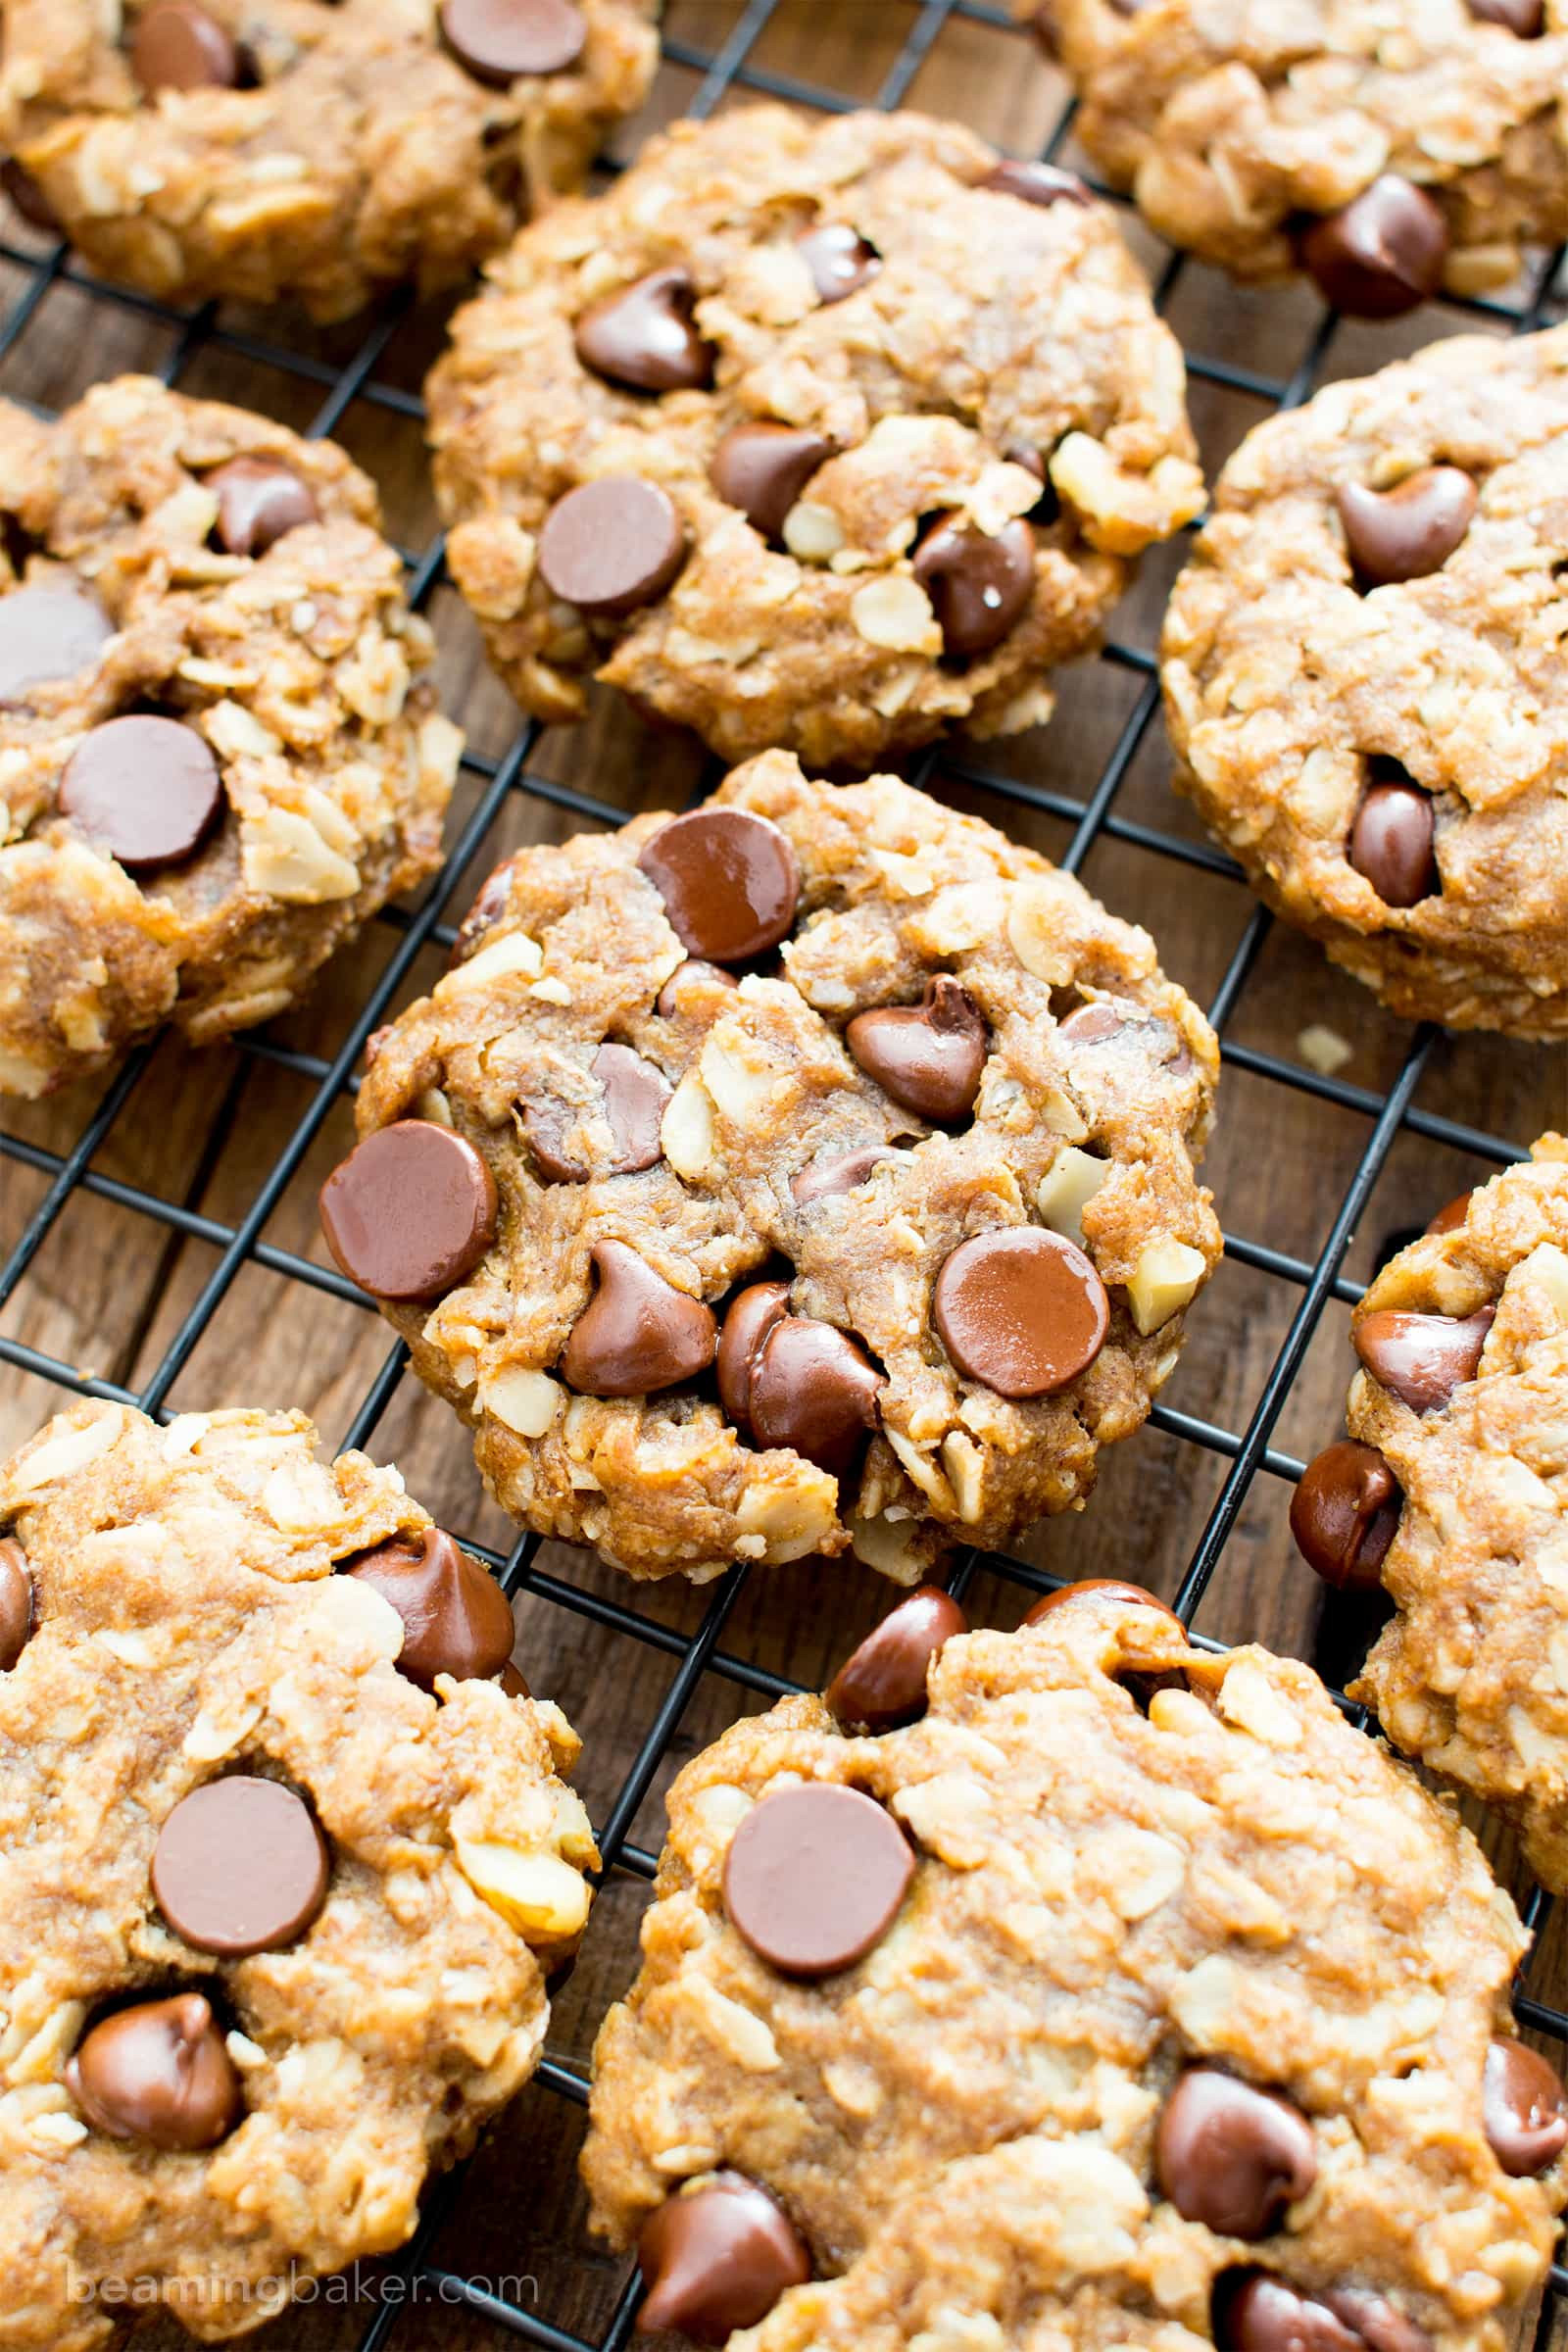 Peanut Butter Cookies With Chocolate Chips  Easy Gluten Free Peanut Butter Chocolate Chip Oatmeal